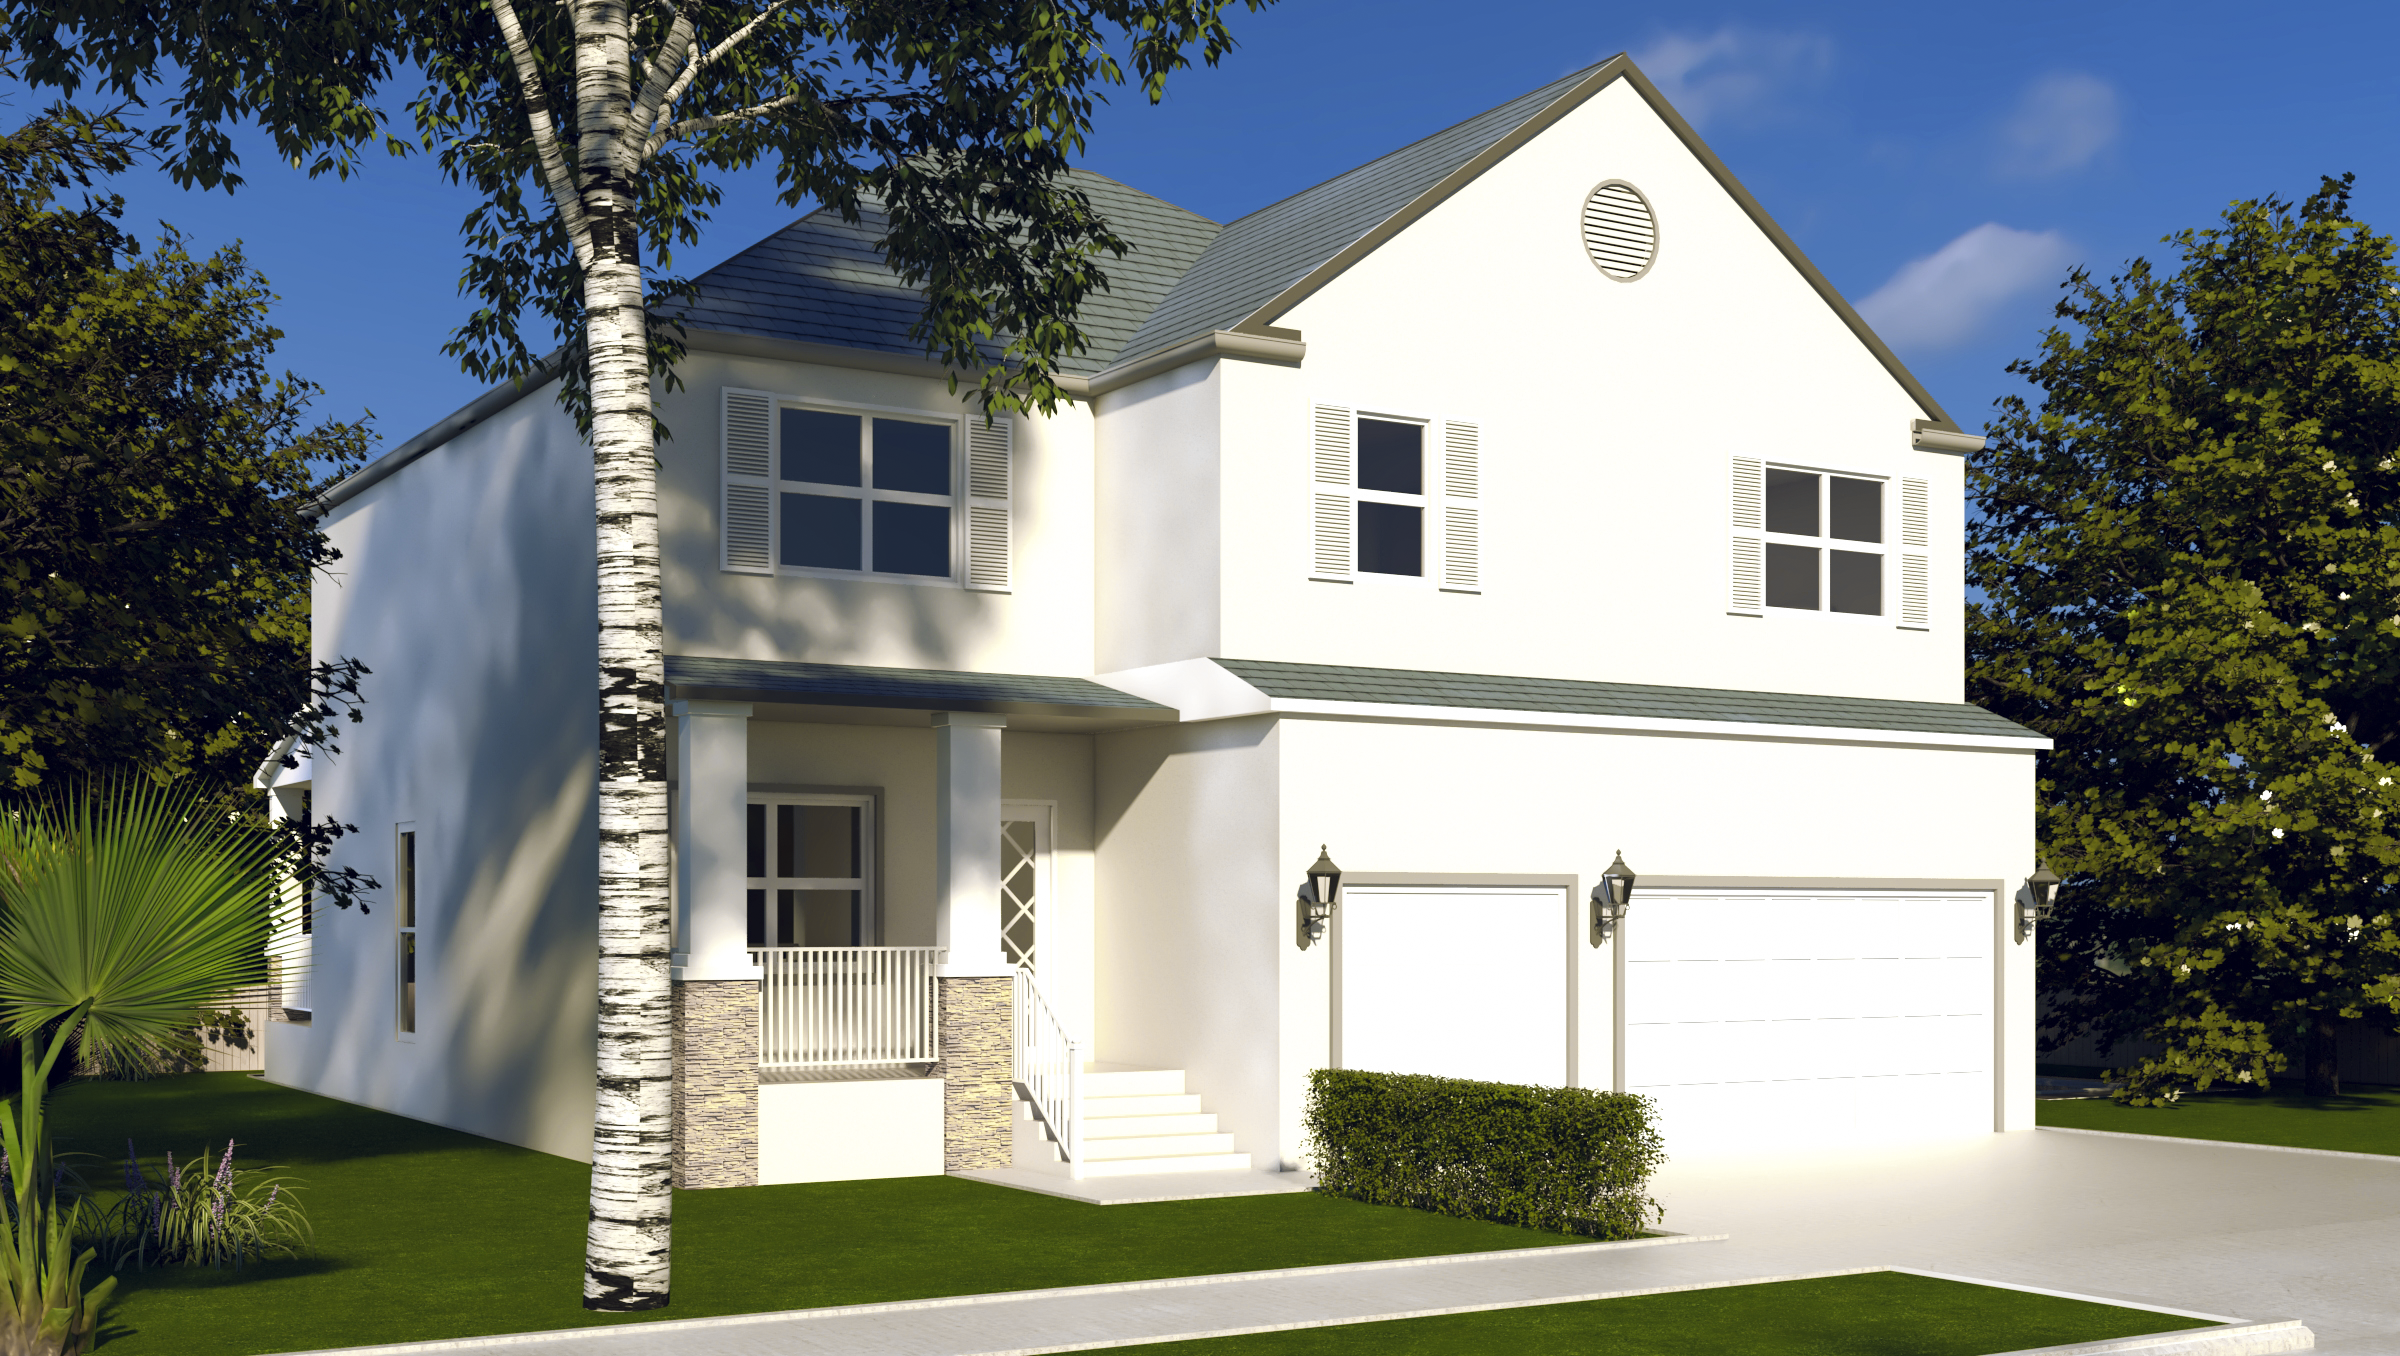 Front Exterior Rendering 2.png